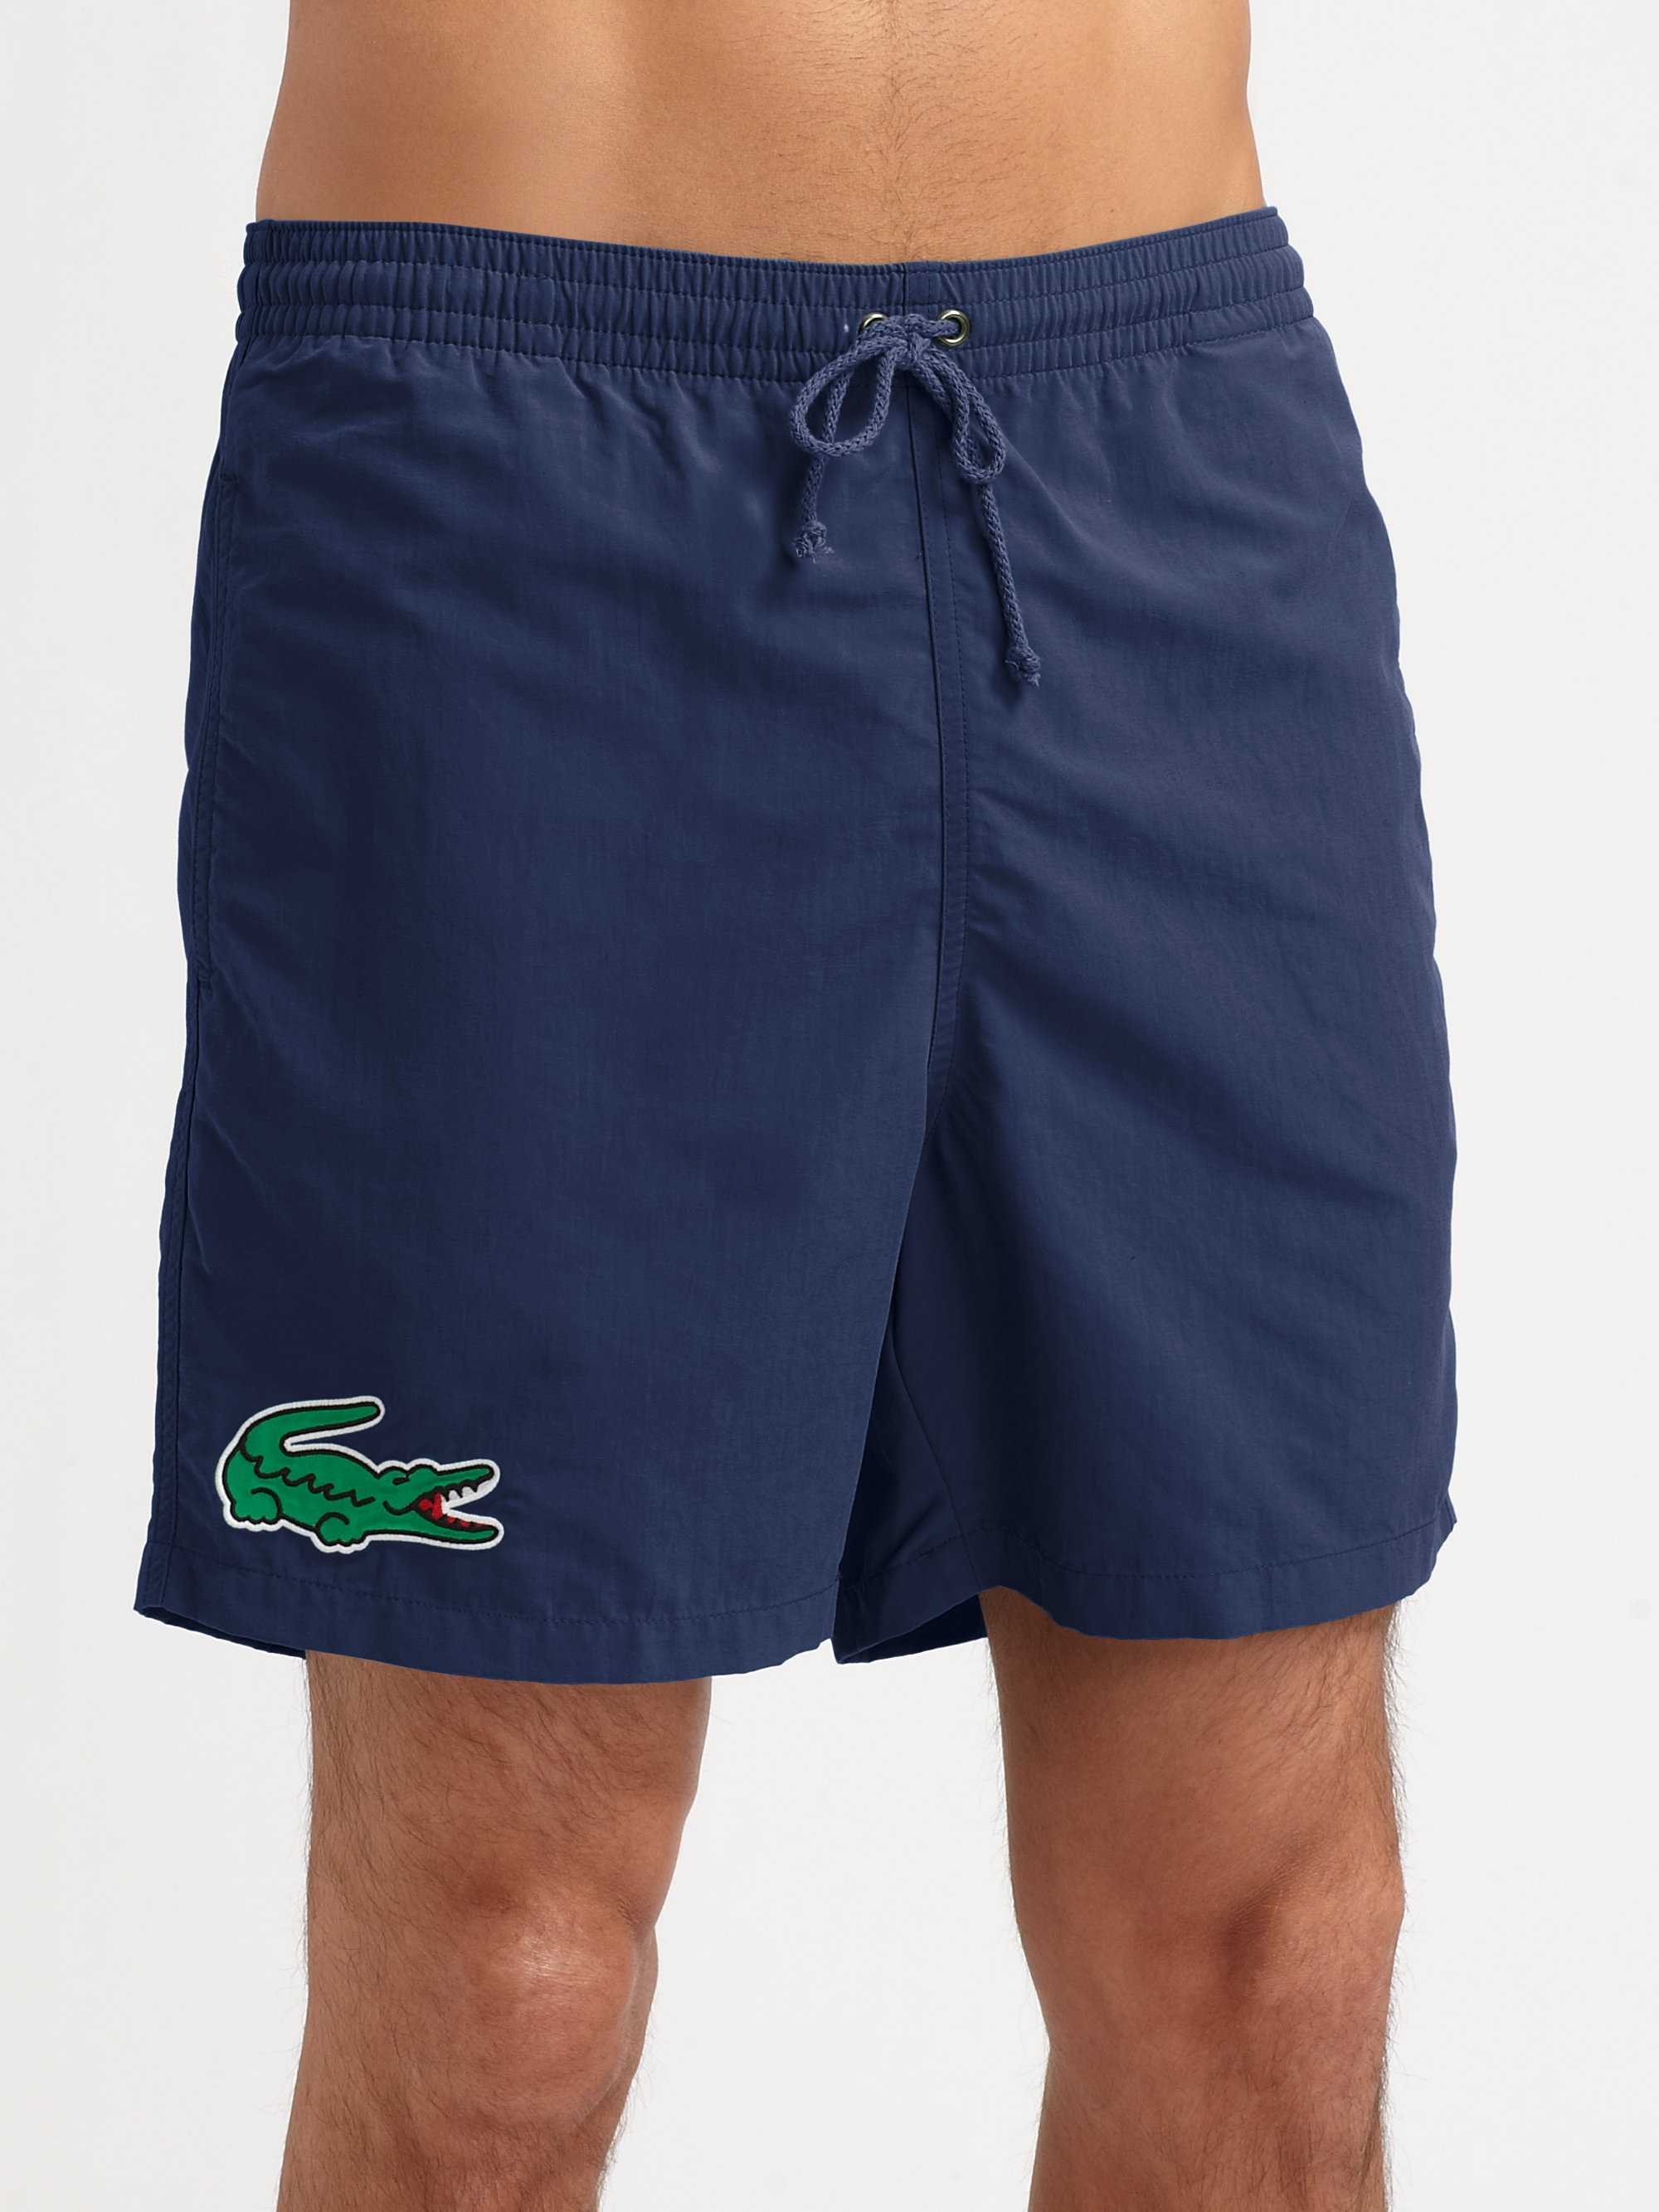 Lyst Lacoste Classic Swim Trunks In Blue For Men